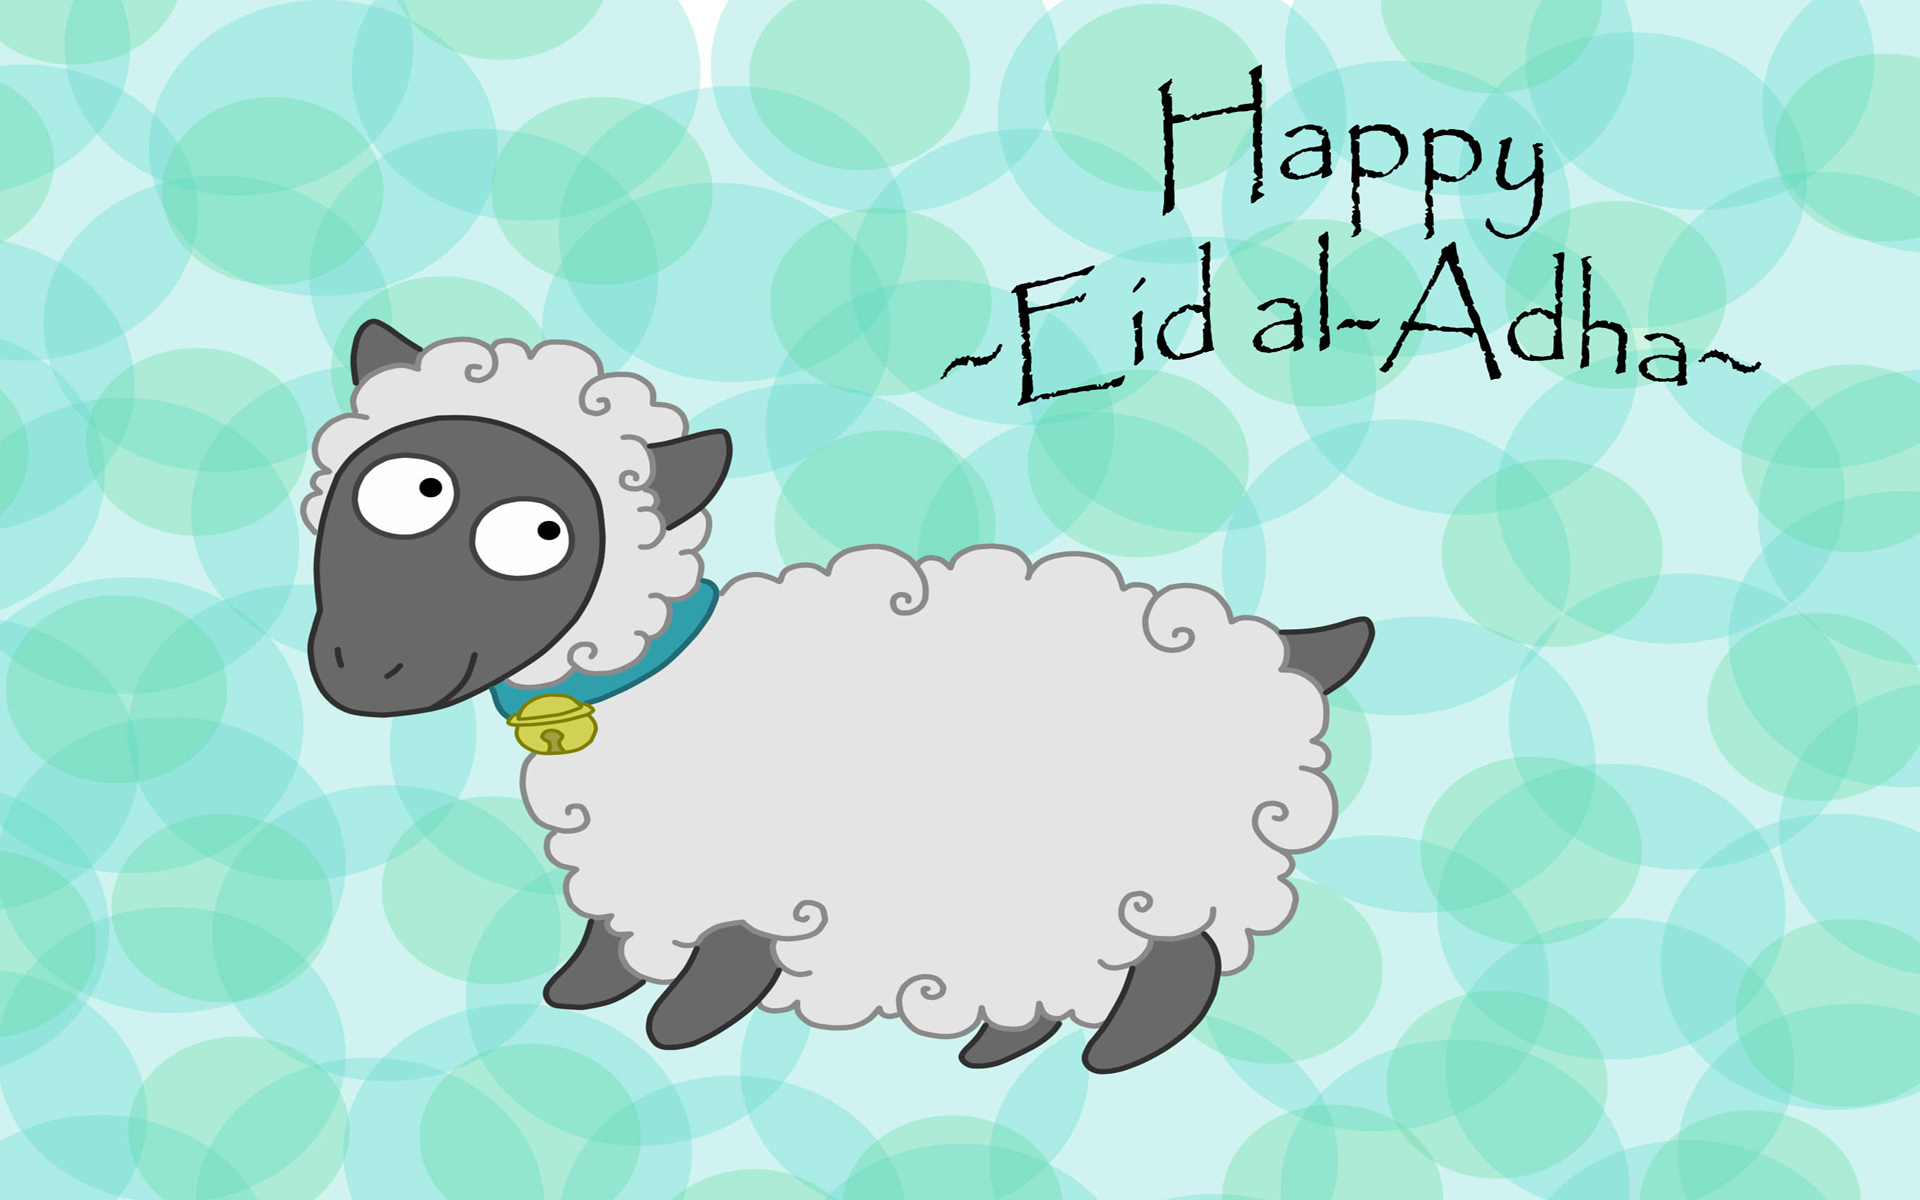 EID alAdha marks the end of Hajj the annual Islamic pilgrimage to Mecca It is one of two Eid celebrations Eid alAdha and Eid alFitr and is often